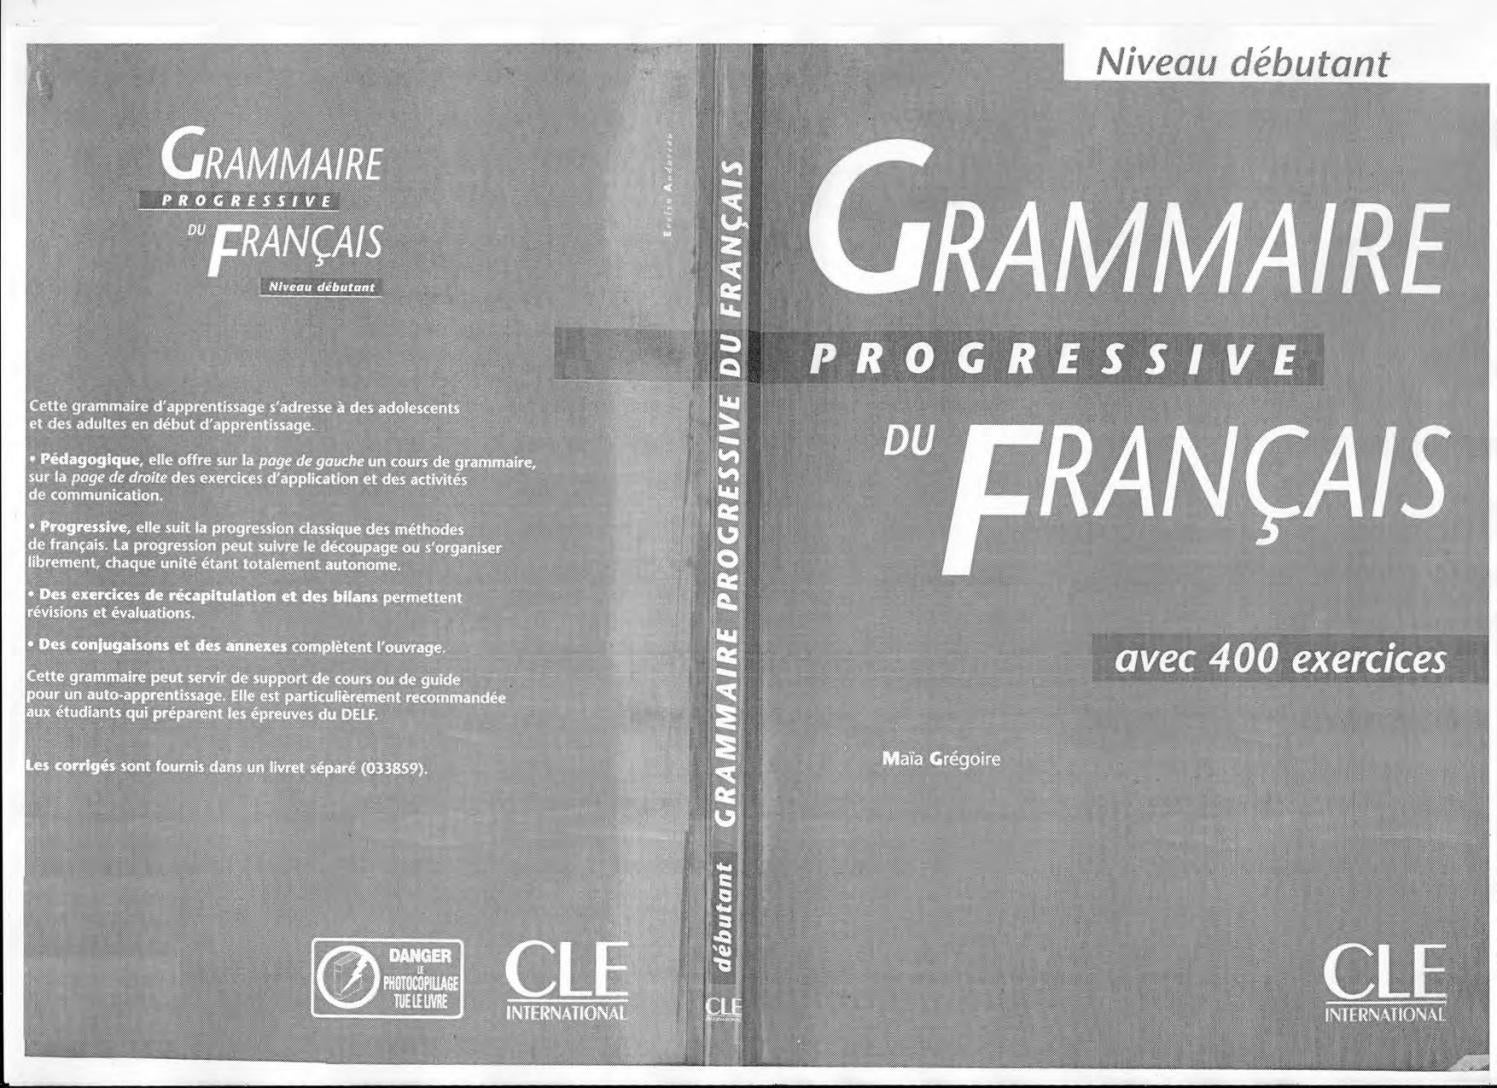 Grammaire Progressive Du Francais Avec 400 Exercices Niveau Debutant 2 Www French Free Com By تعلم اللغة الفرنسية Issuu